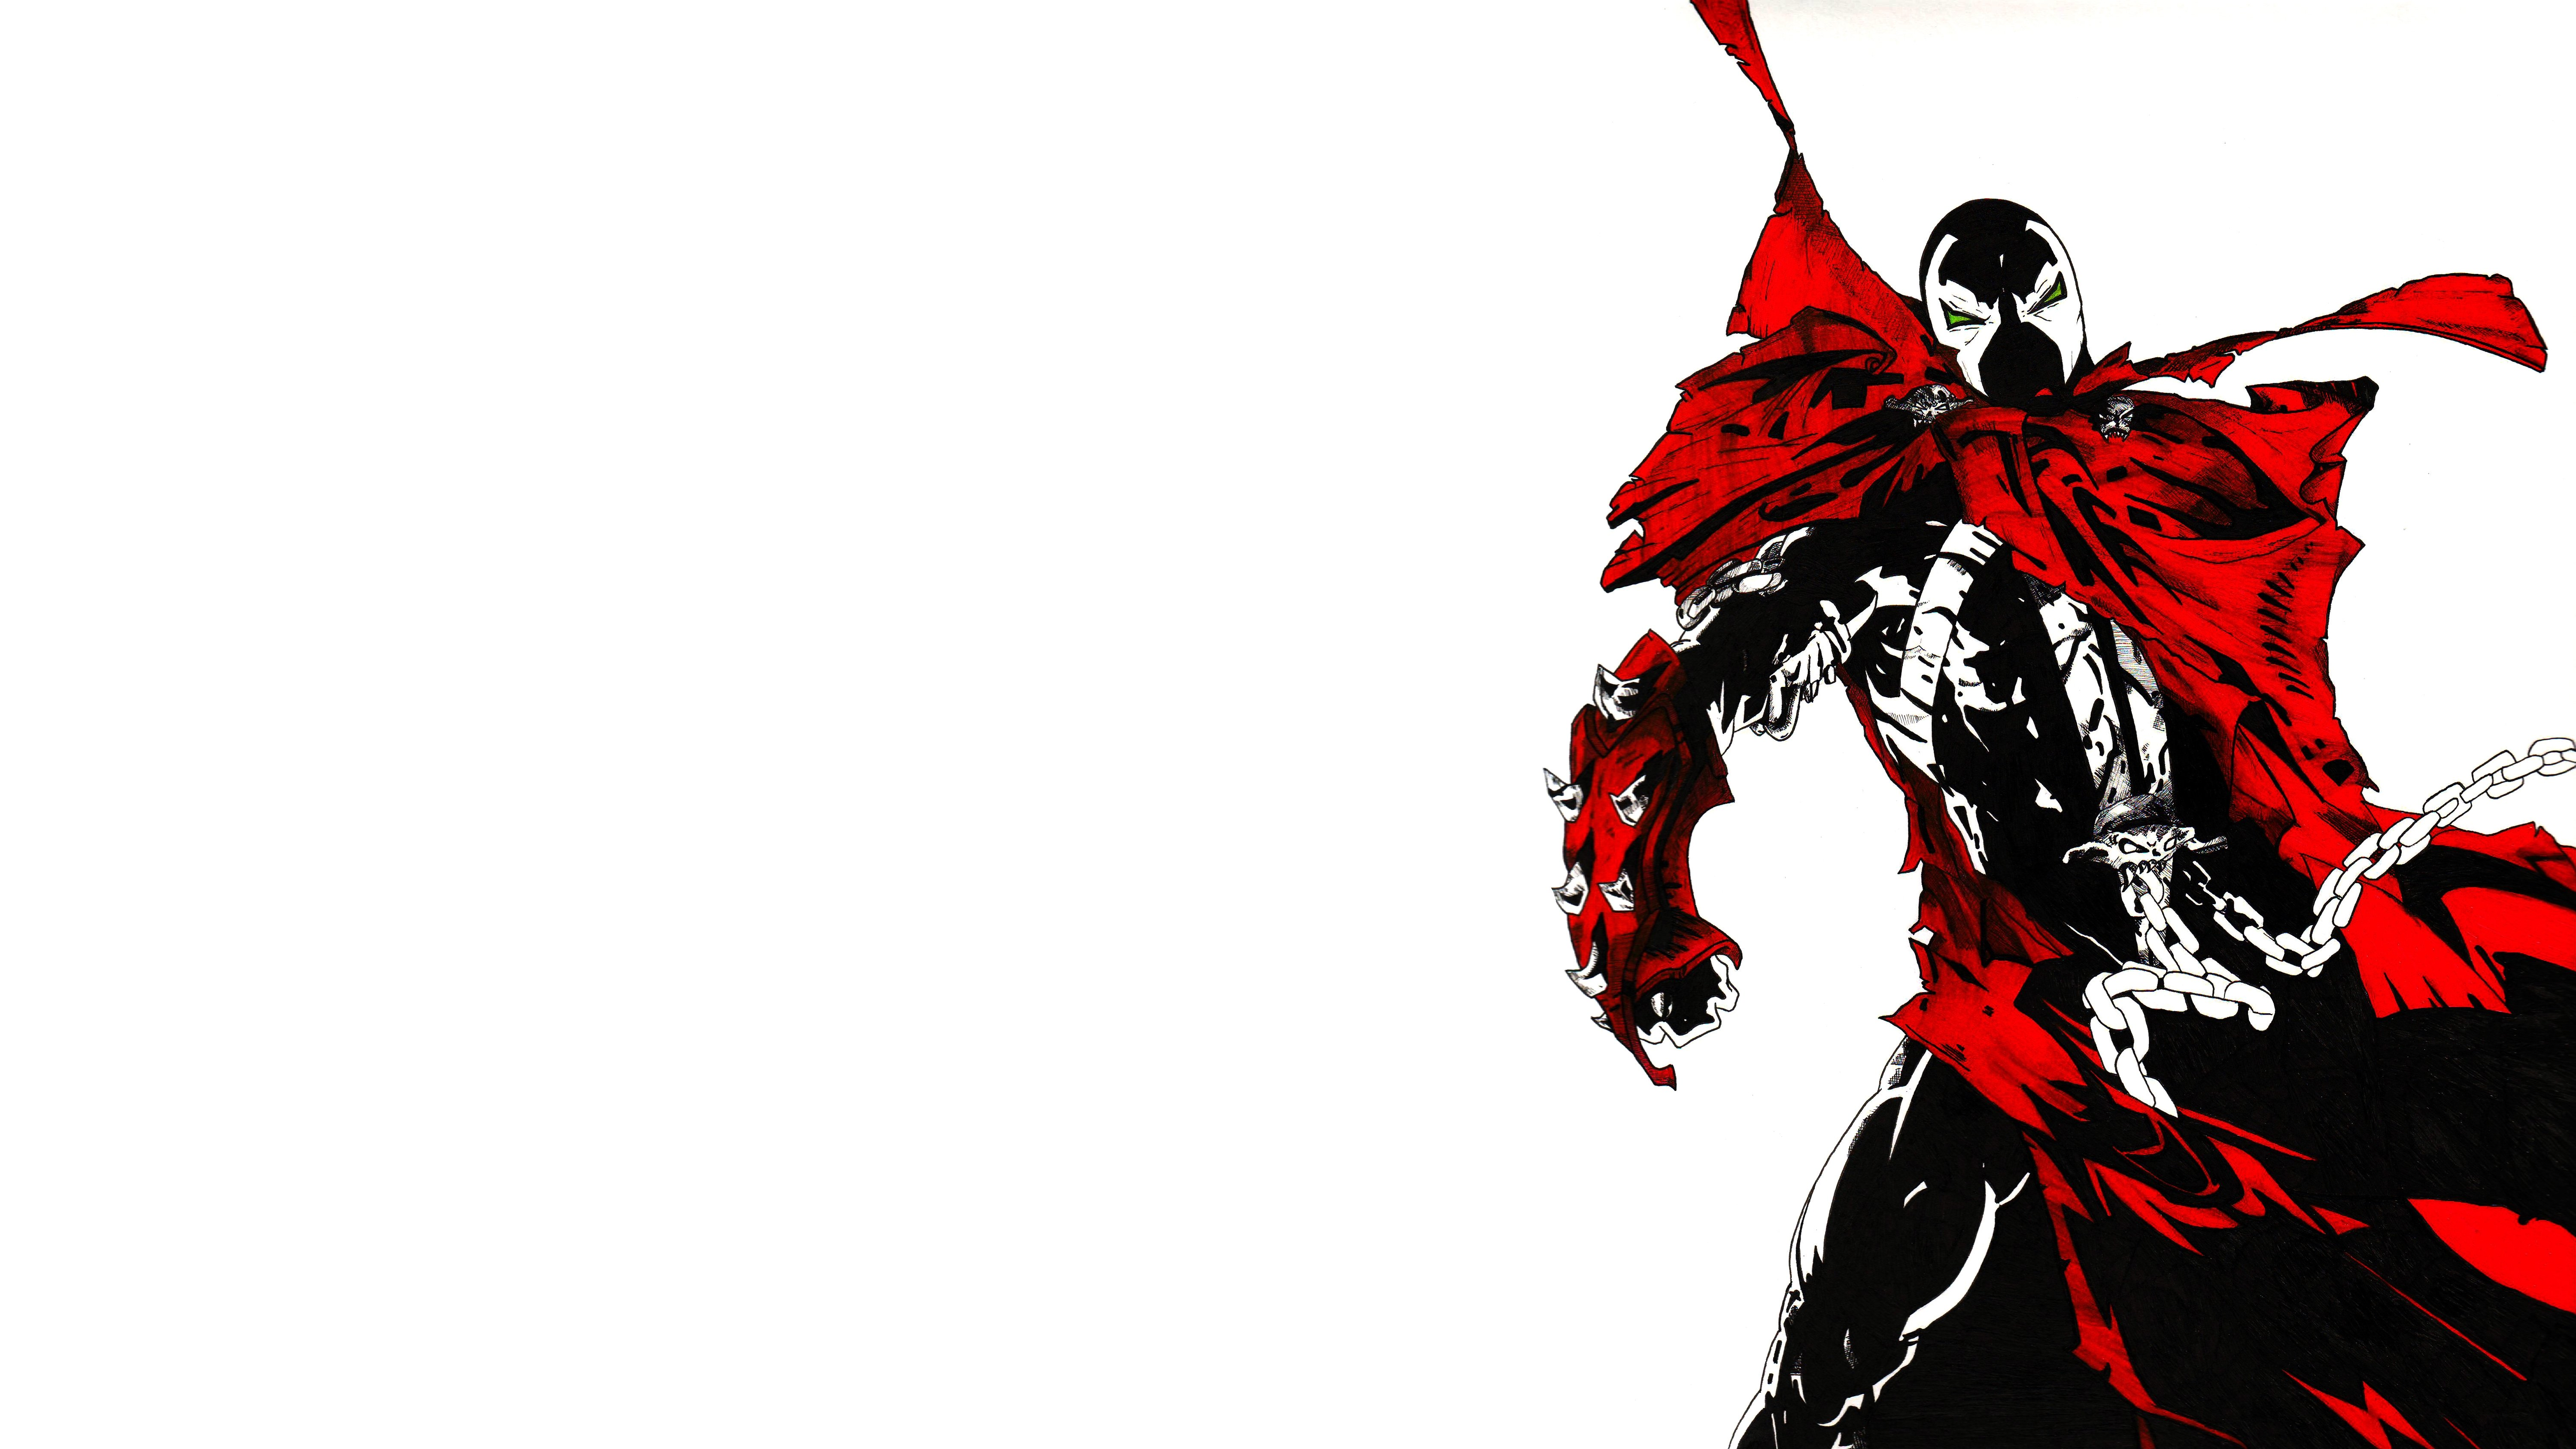 Spawn Computer Wallpapers, Desktop Backgrounds | 6000x3375 | ID:465467